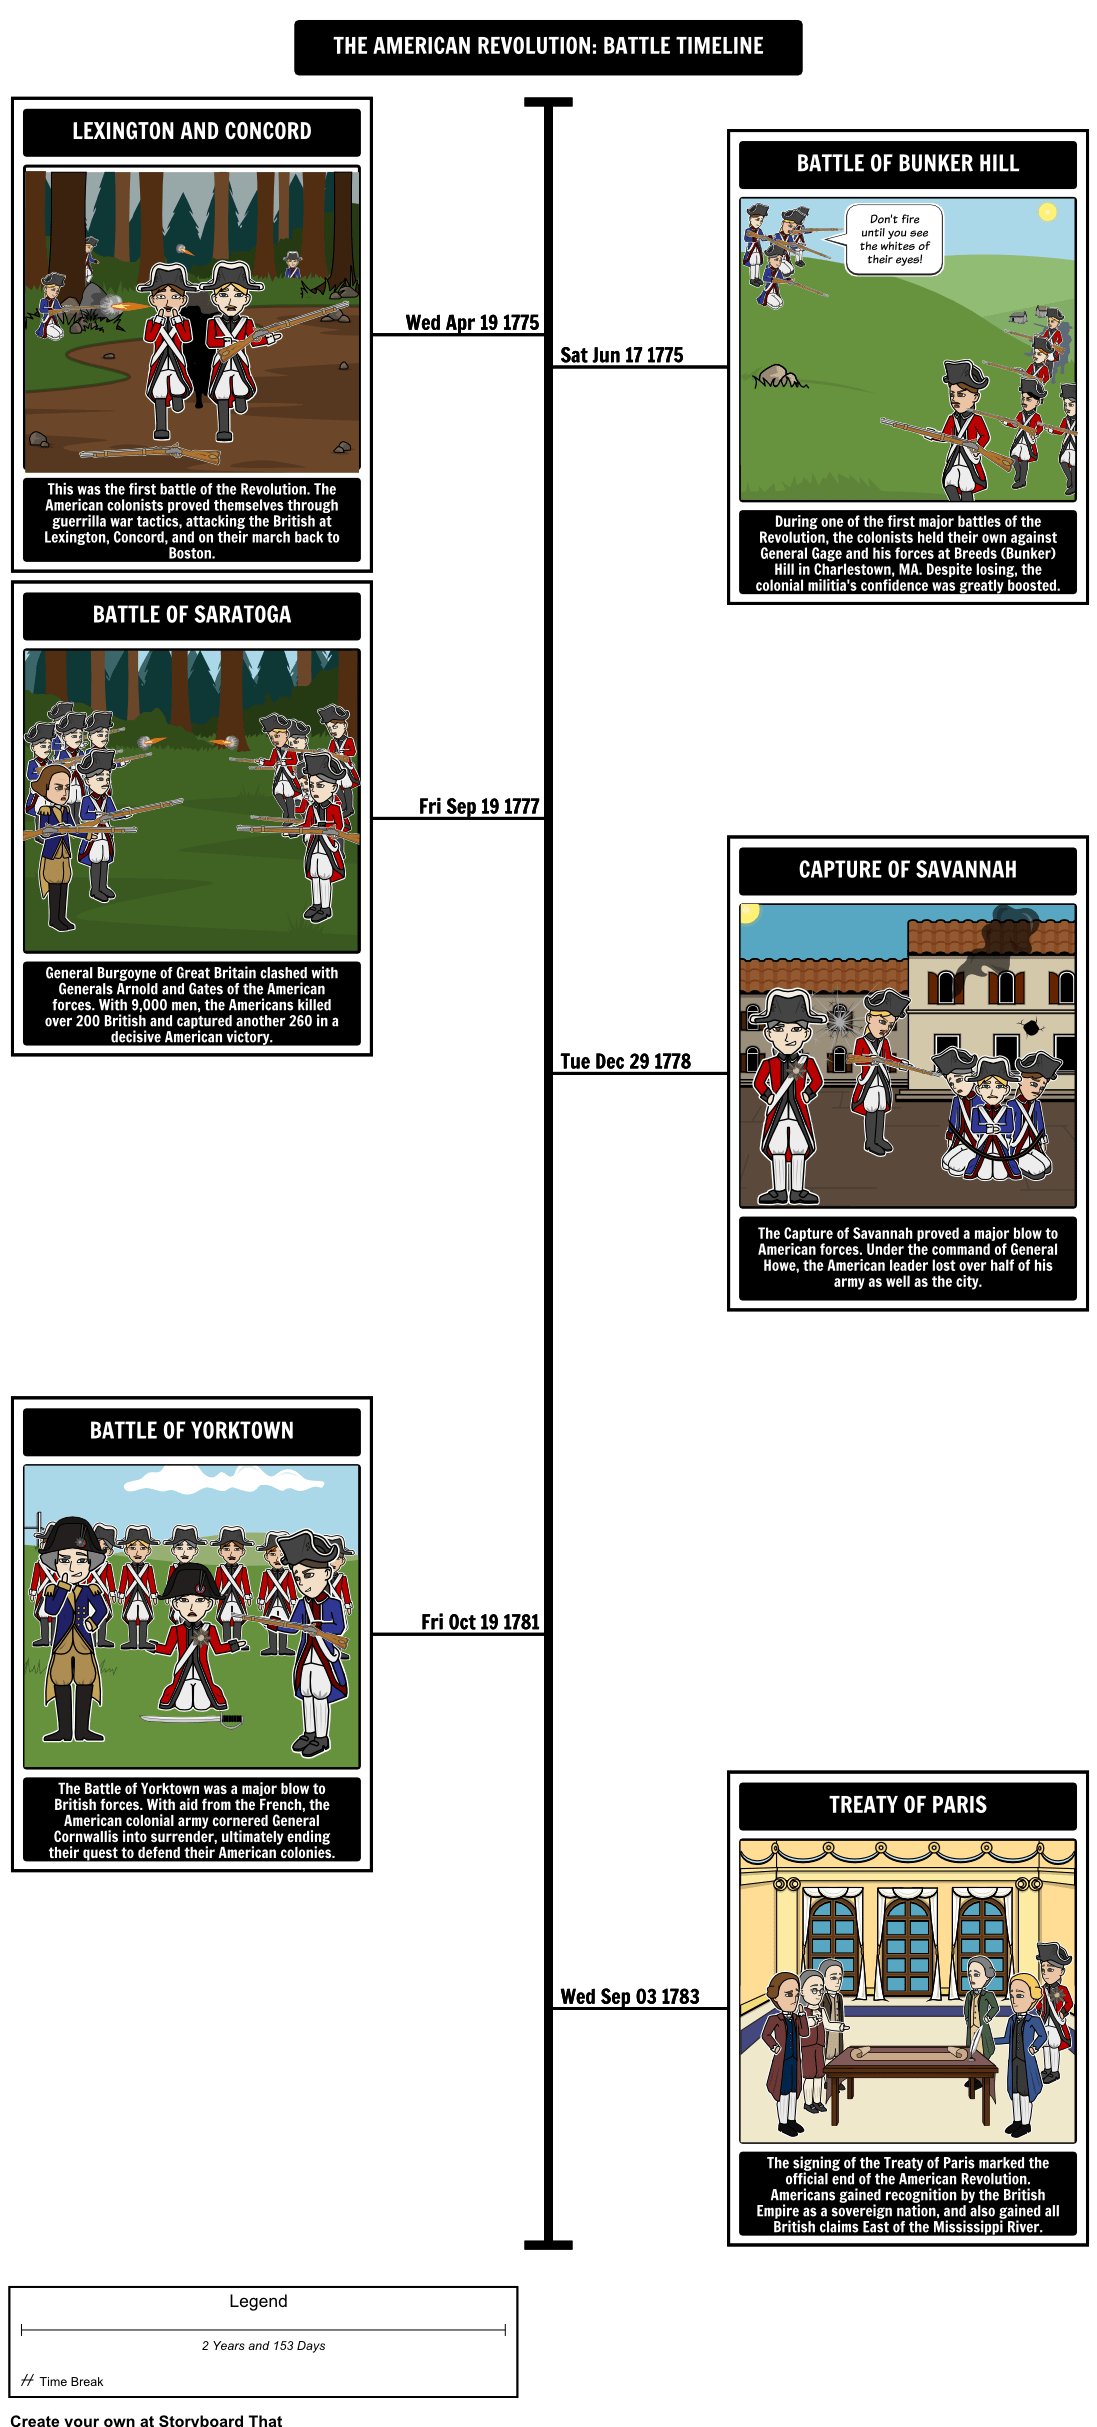 Students Can Track The Battles During The American Revolution By Creating A Timeline Using